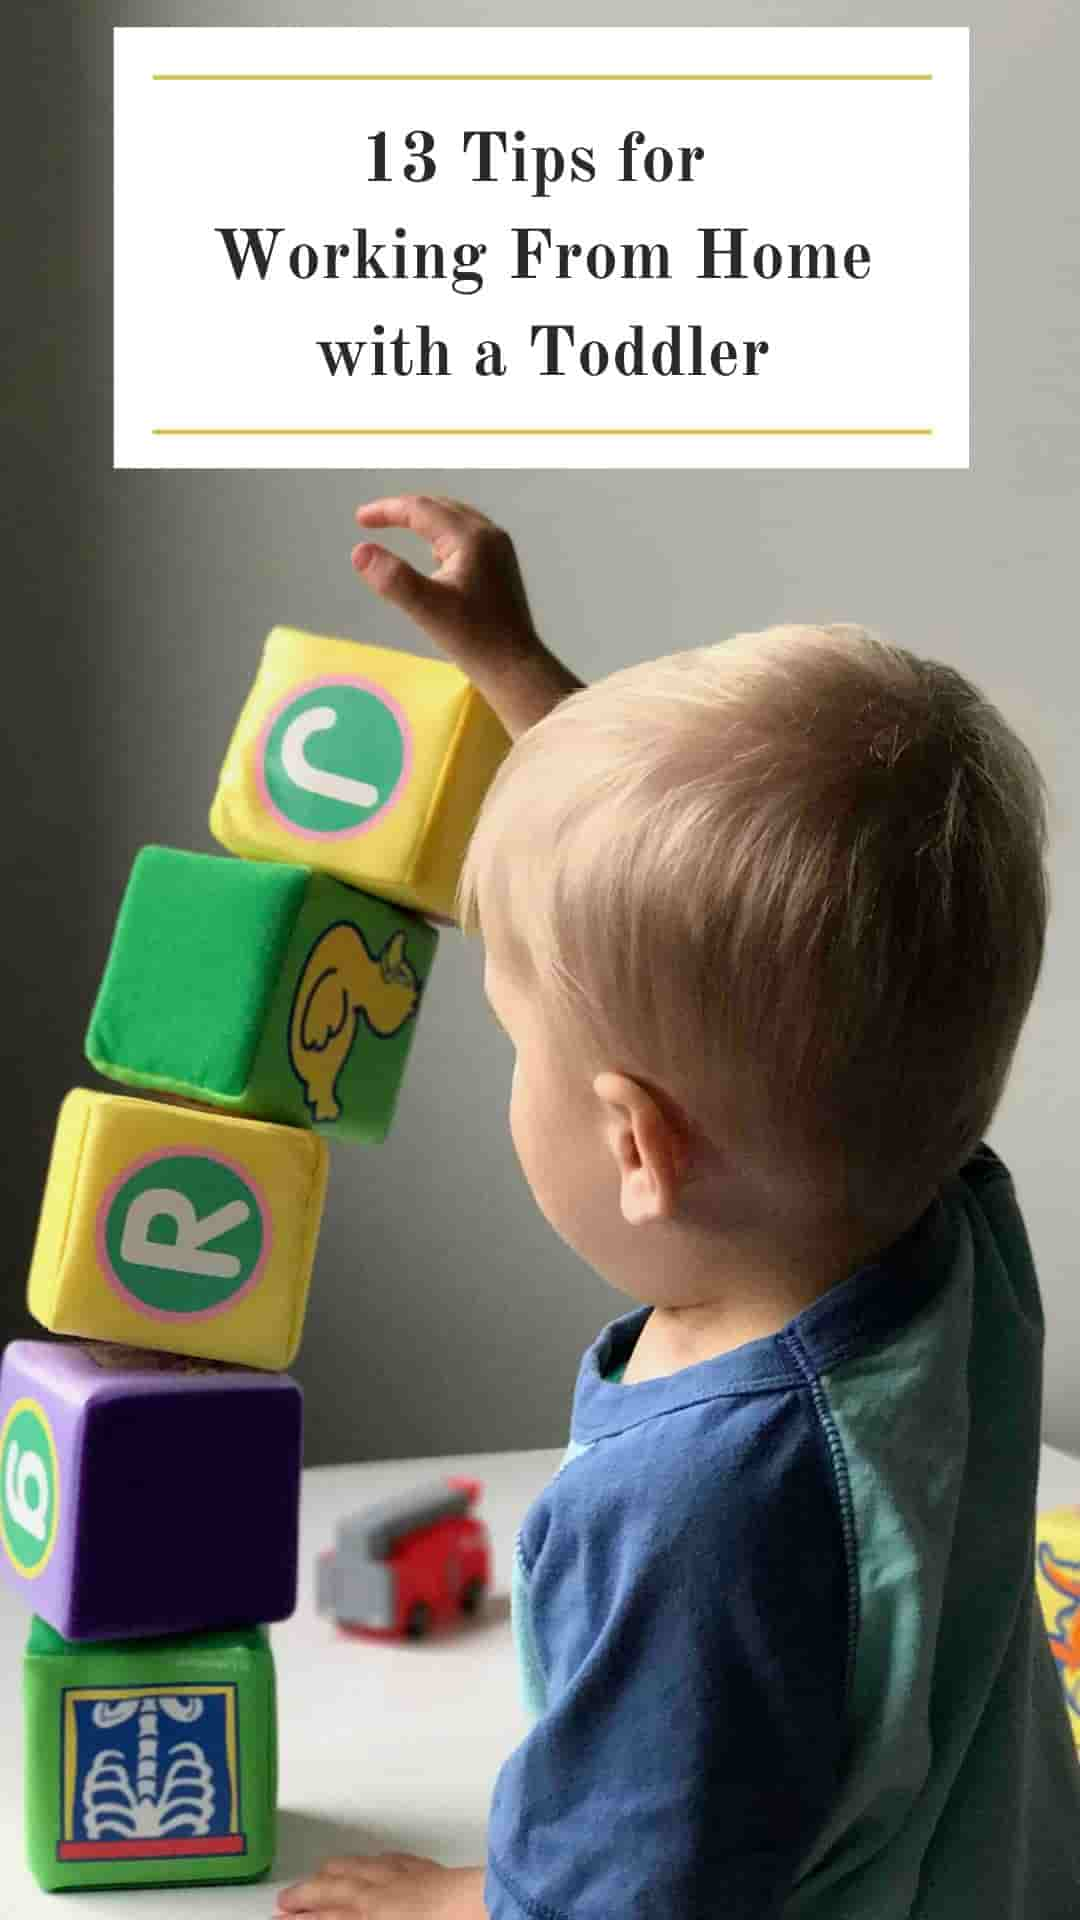 Pinterest image_13 tips for working from home with a toddler_my life in germany_hkwomanabroad_edited-min